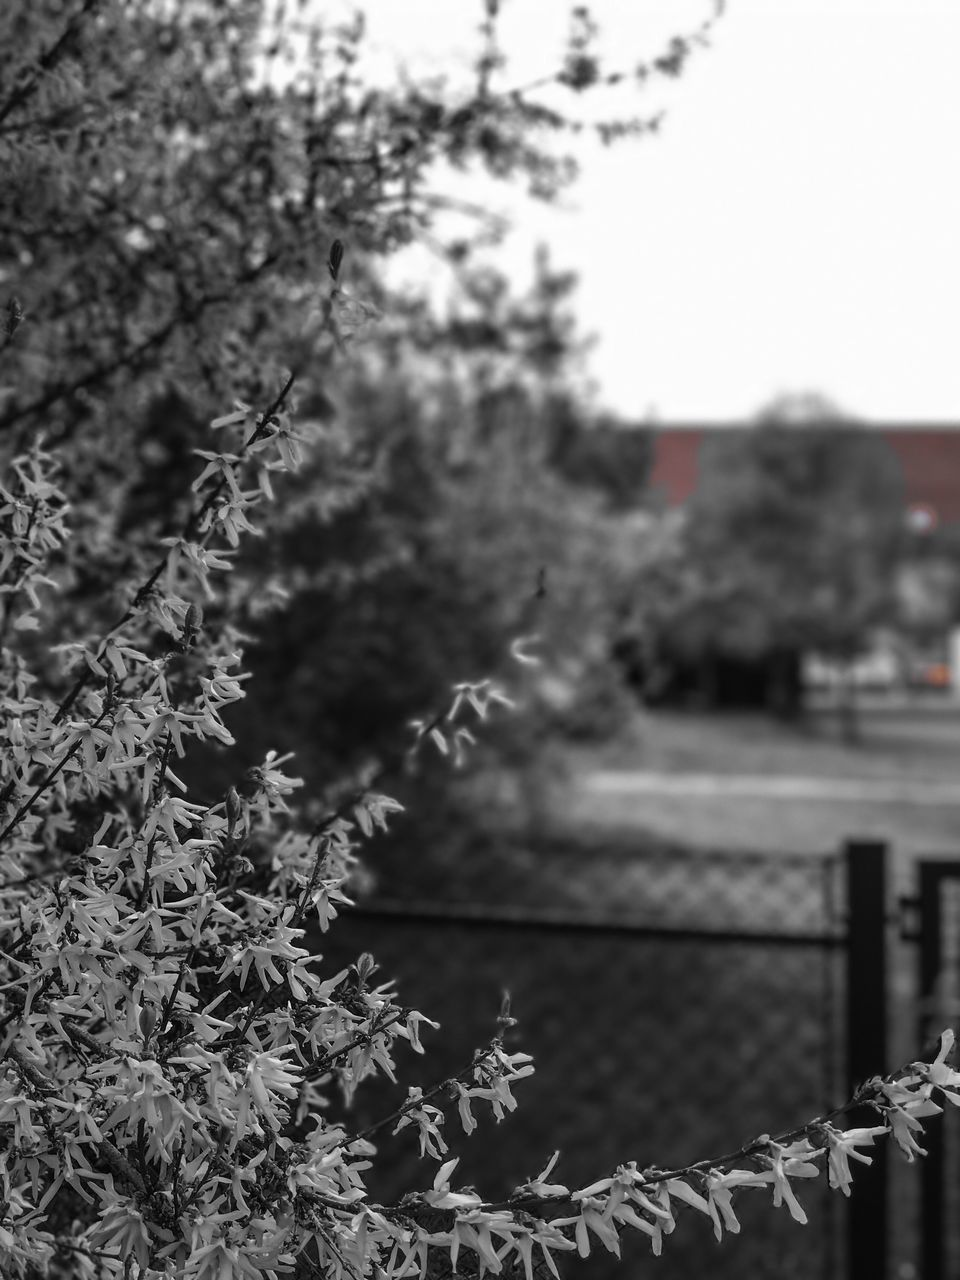 tree, growth, focus on foreground, plant, nature, day, no people, outdoors, close-up, beauty in nature, flower, sky